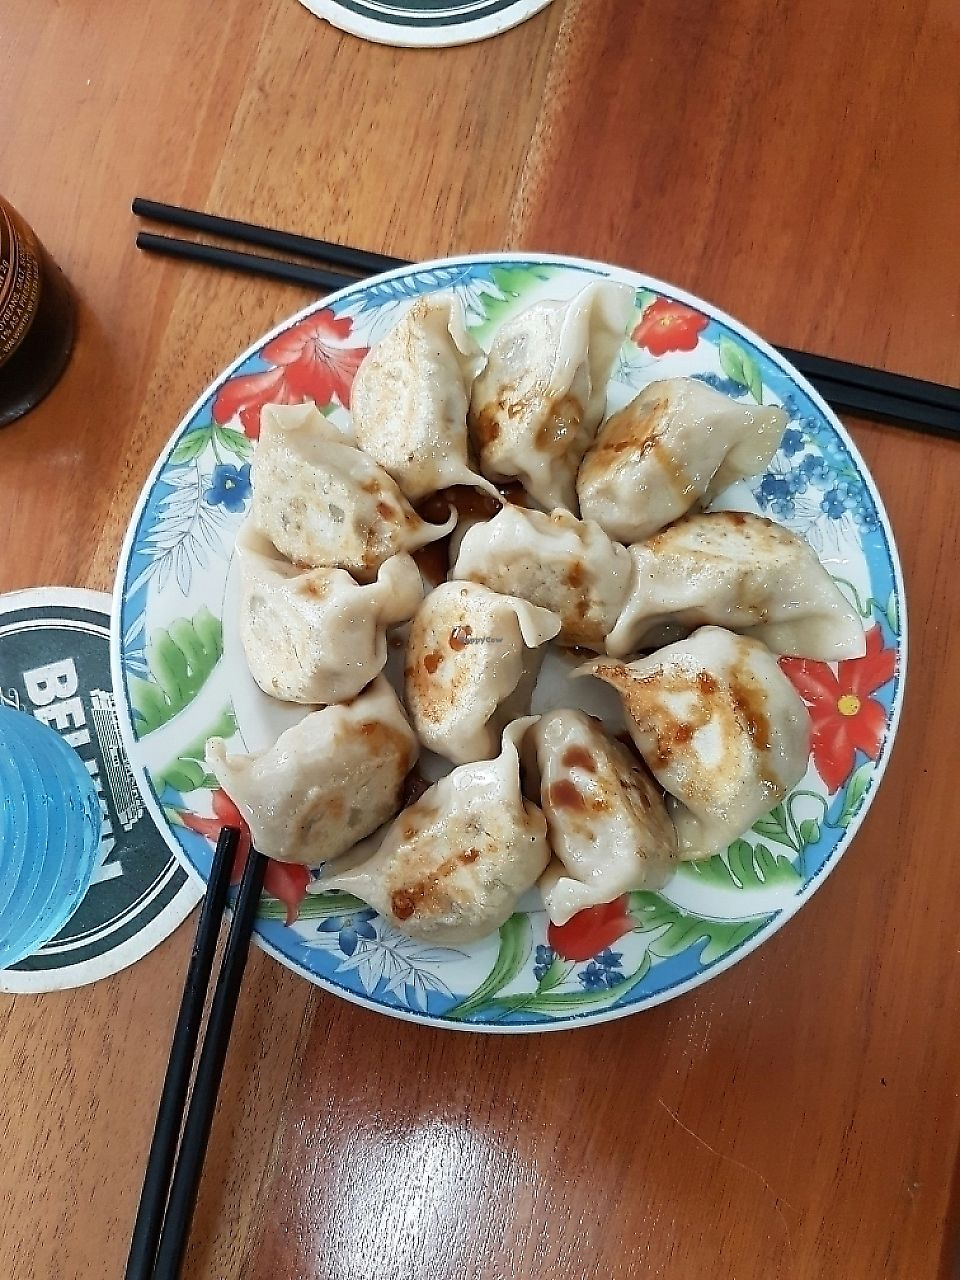 """Photo of Ma Ma Chen's  by <a href=""""/members/profile/PernilleR"""">PernilleR</a> <br/>Fried dumplings <br/> March 9, 2017  - <a href='/contact/abuse/image/28318/274468'>Report</a>"""